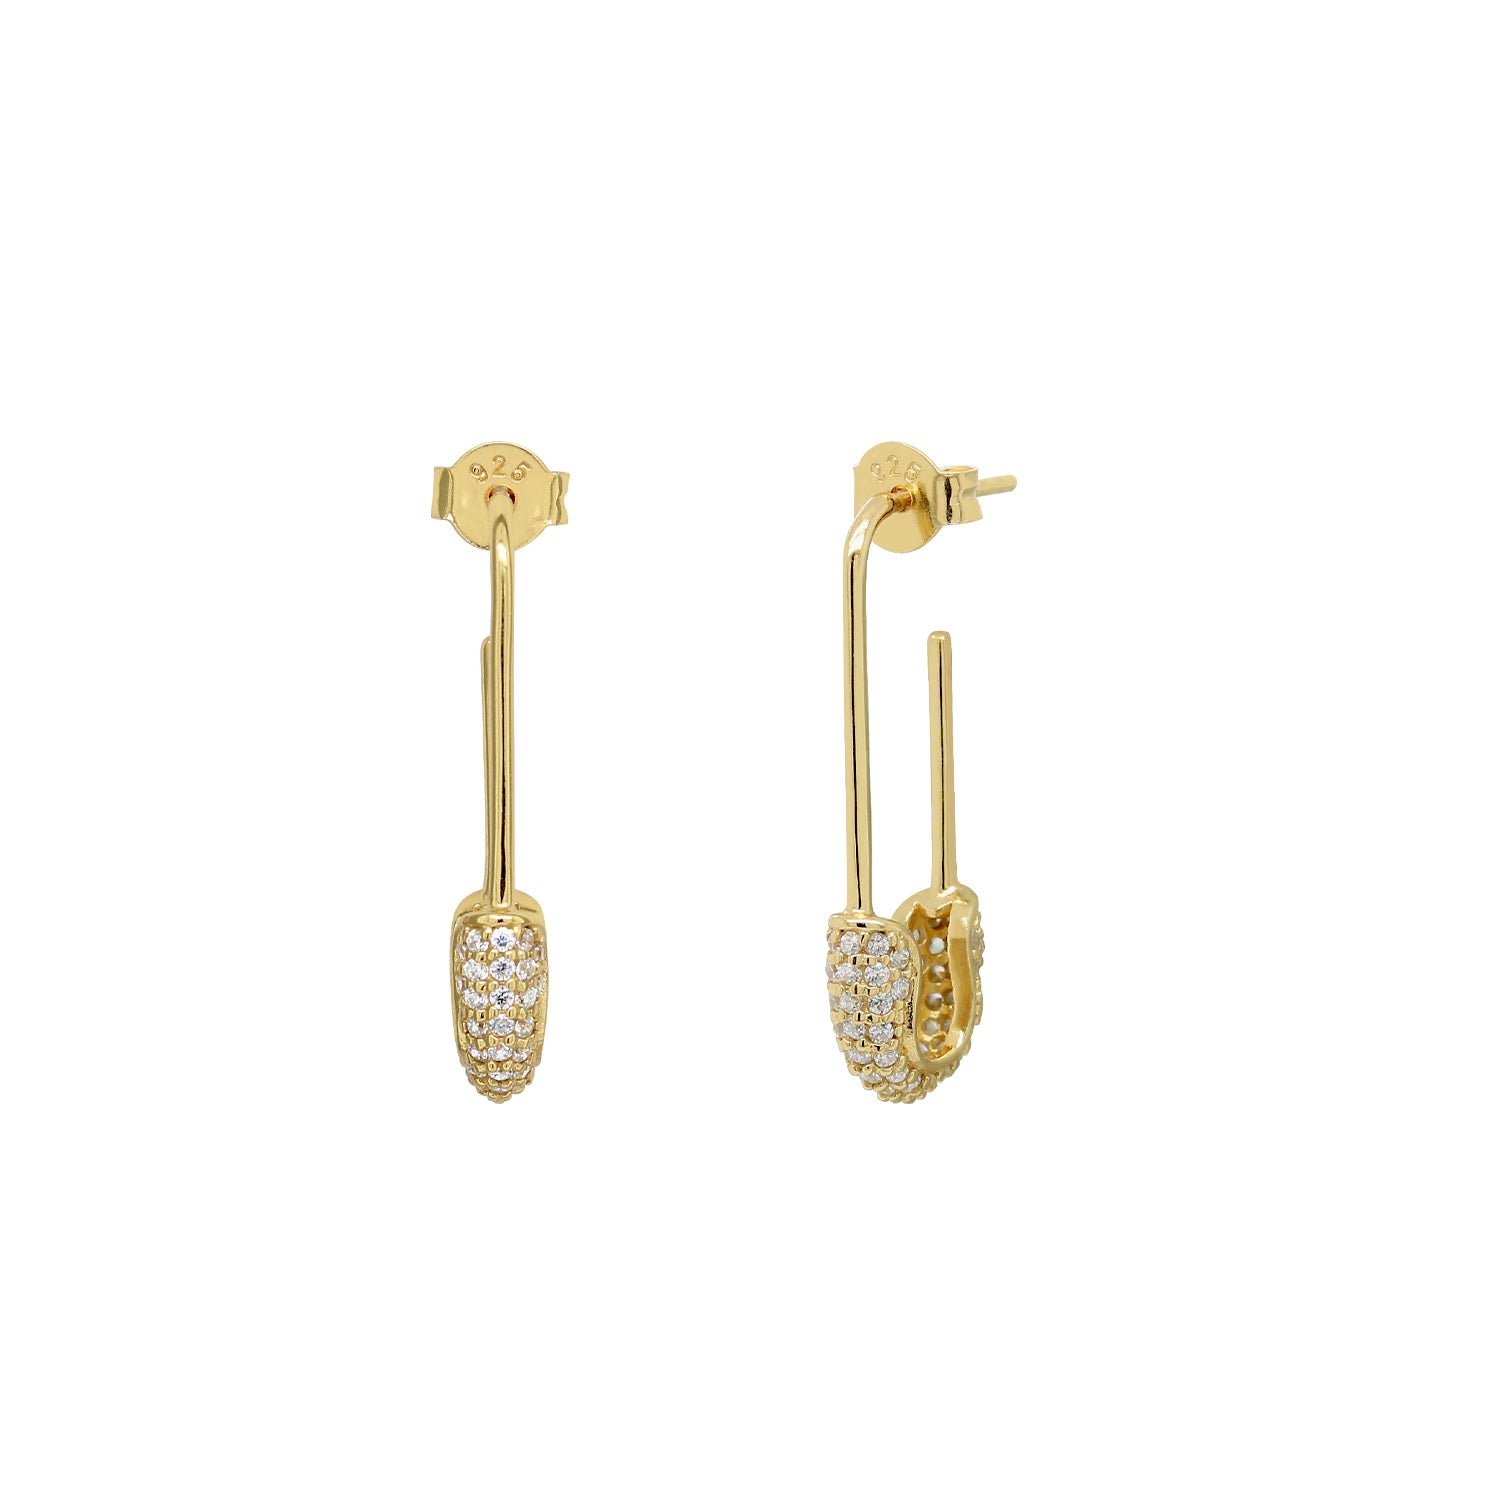 Luxe Pave Safety Pin Stud Earrings